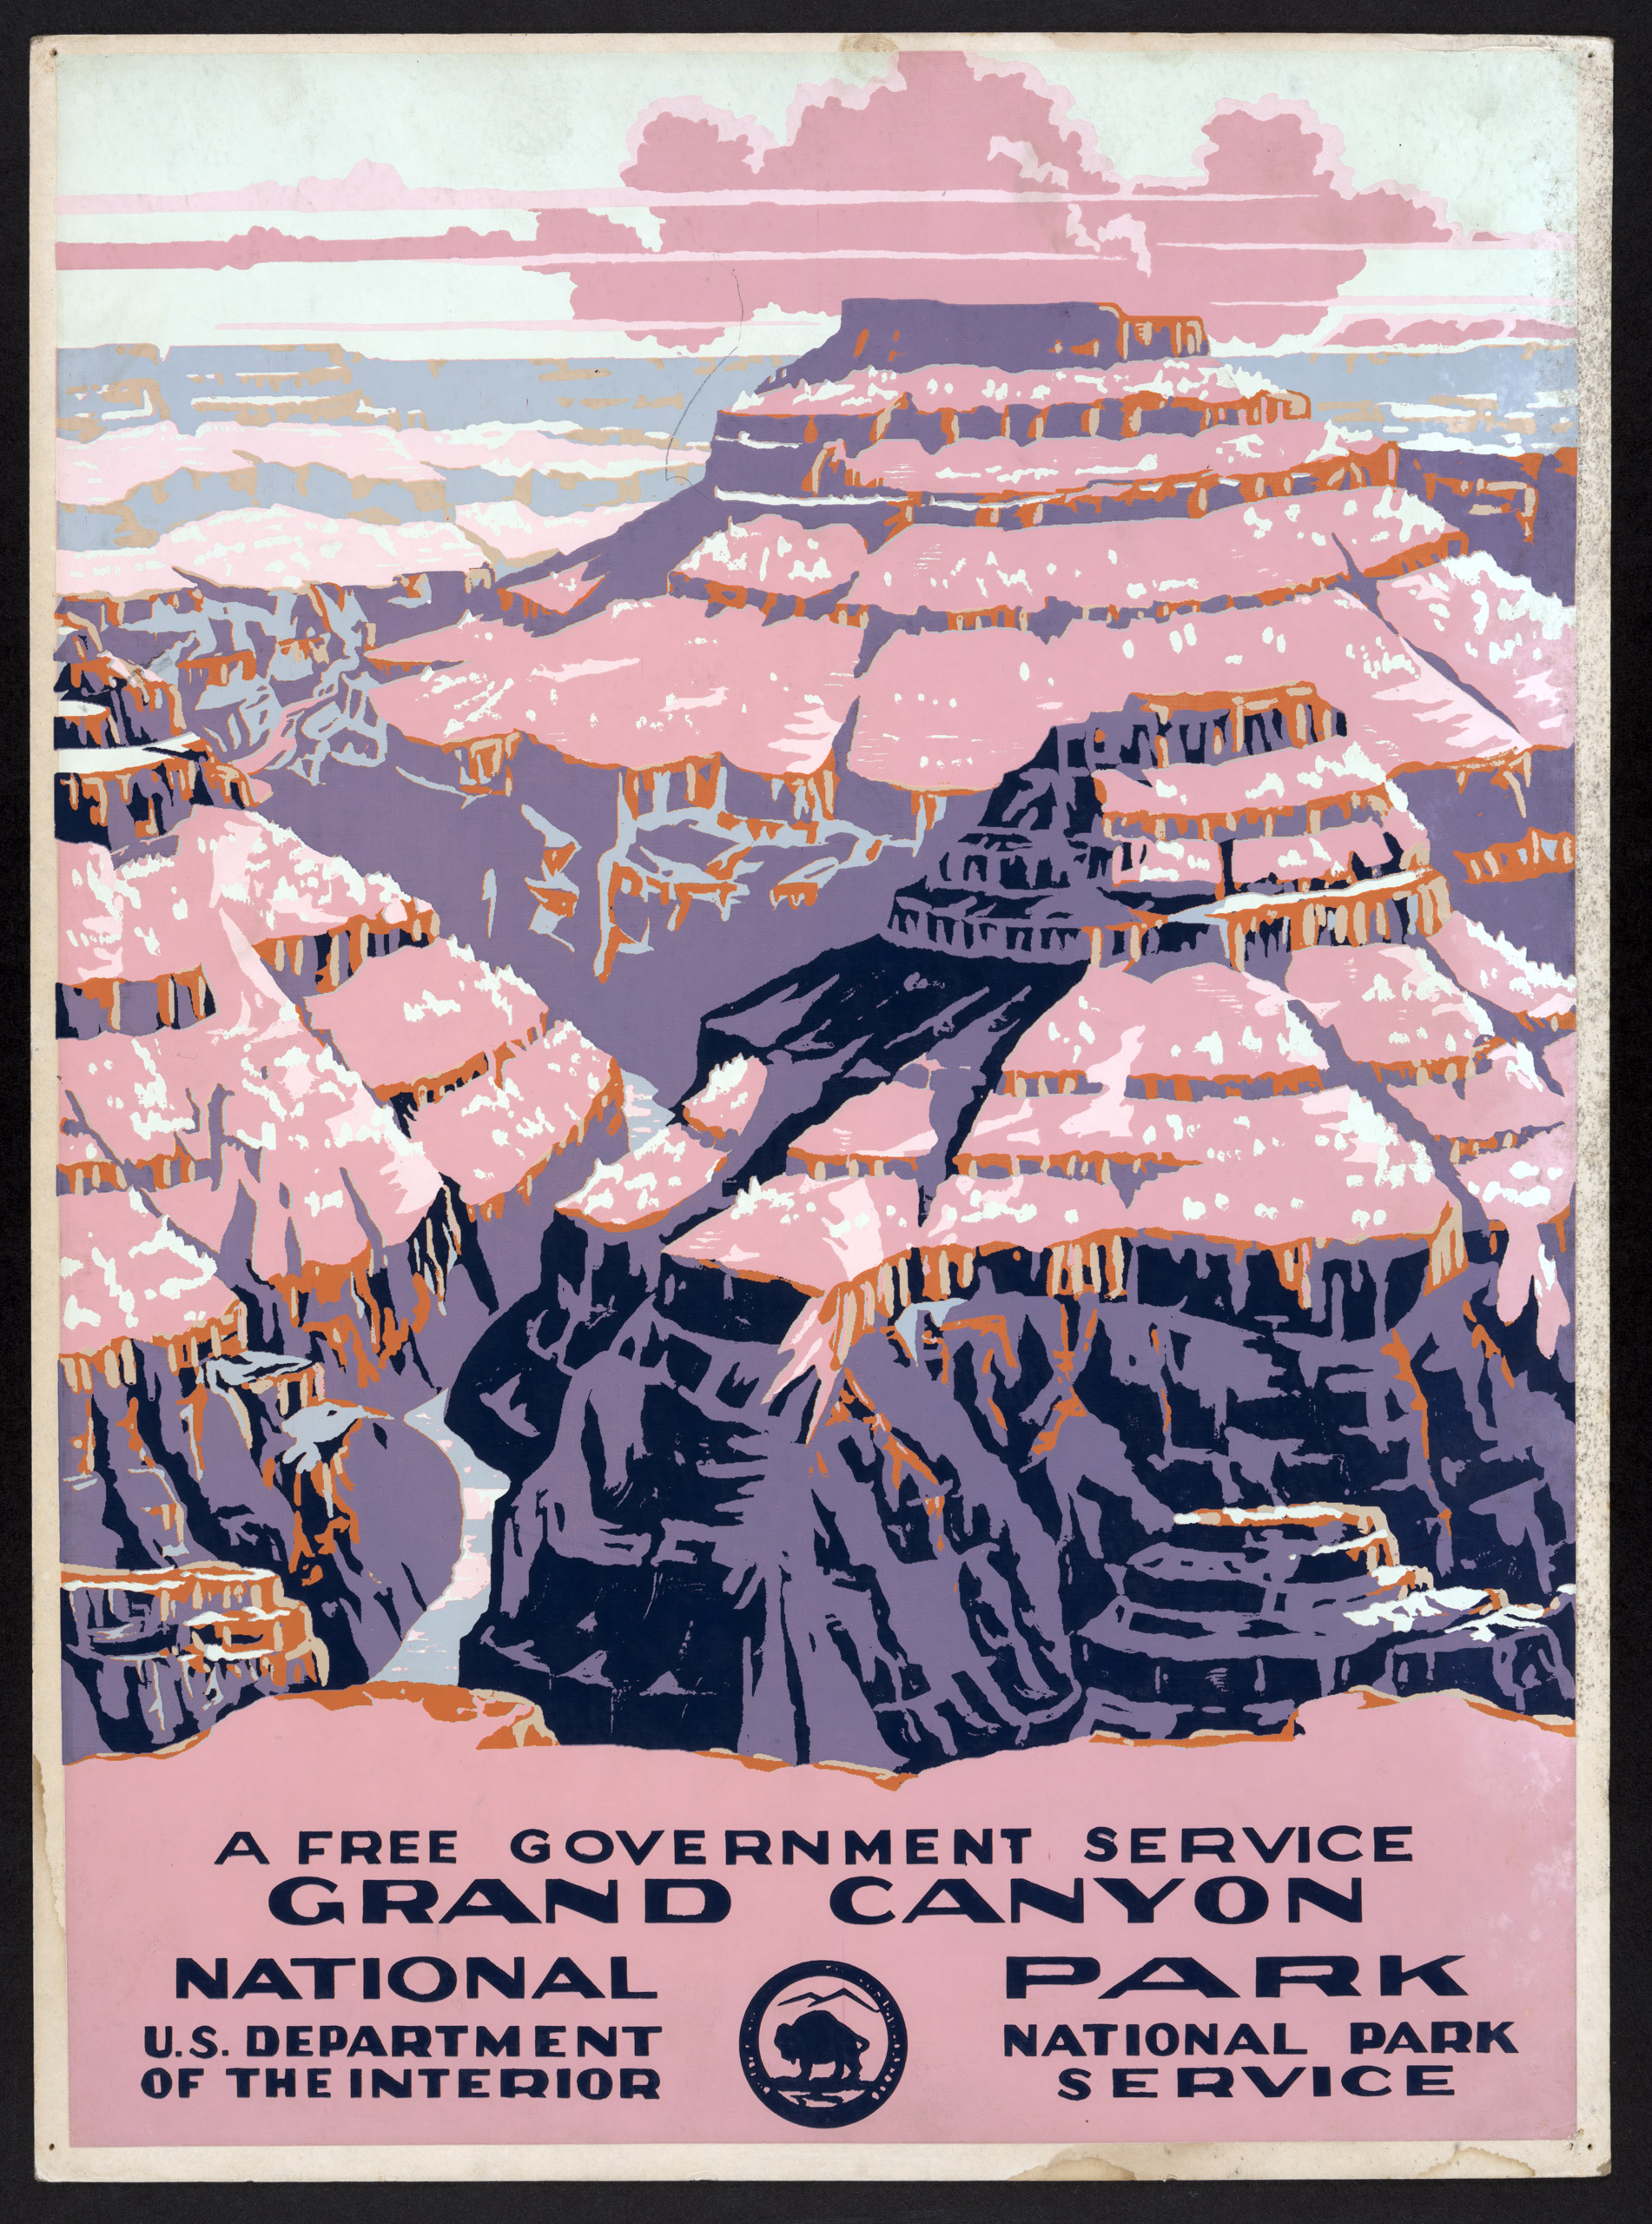 Grand Canyon National Park, a free government service, ca. 1938.